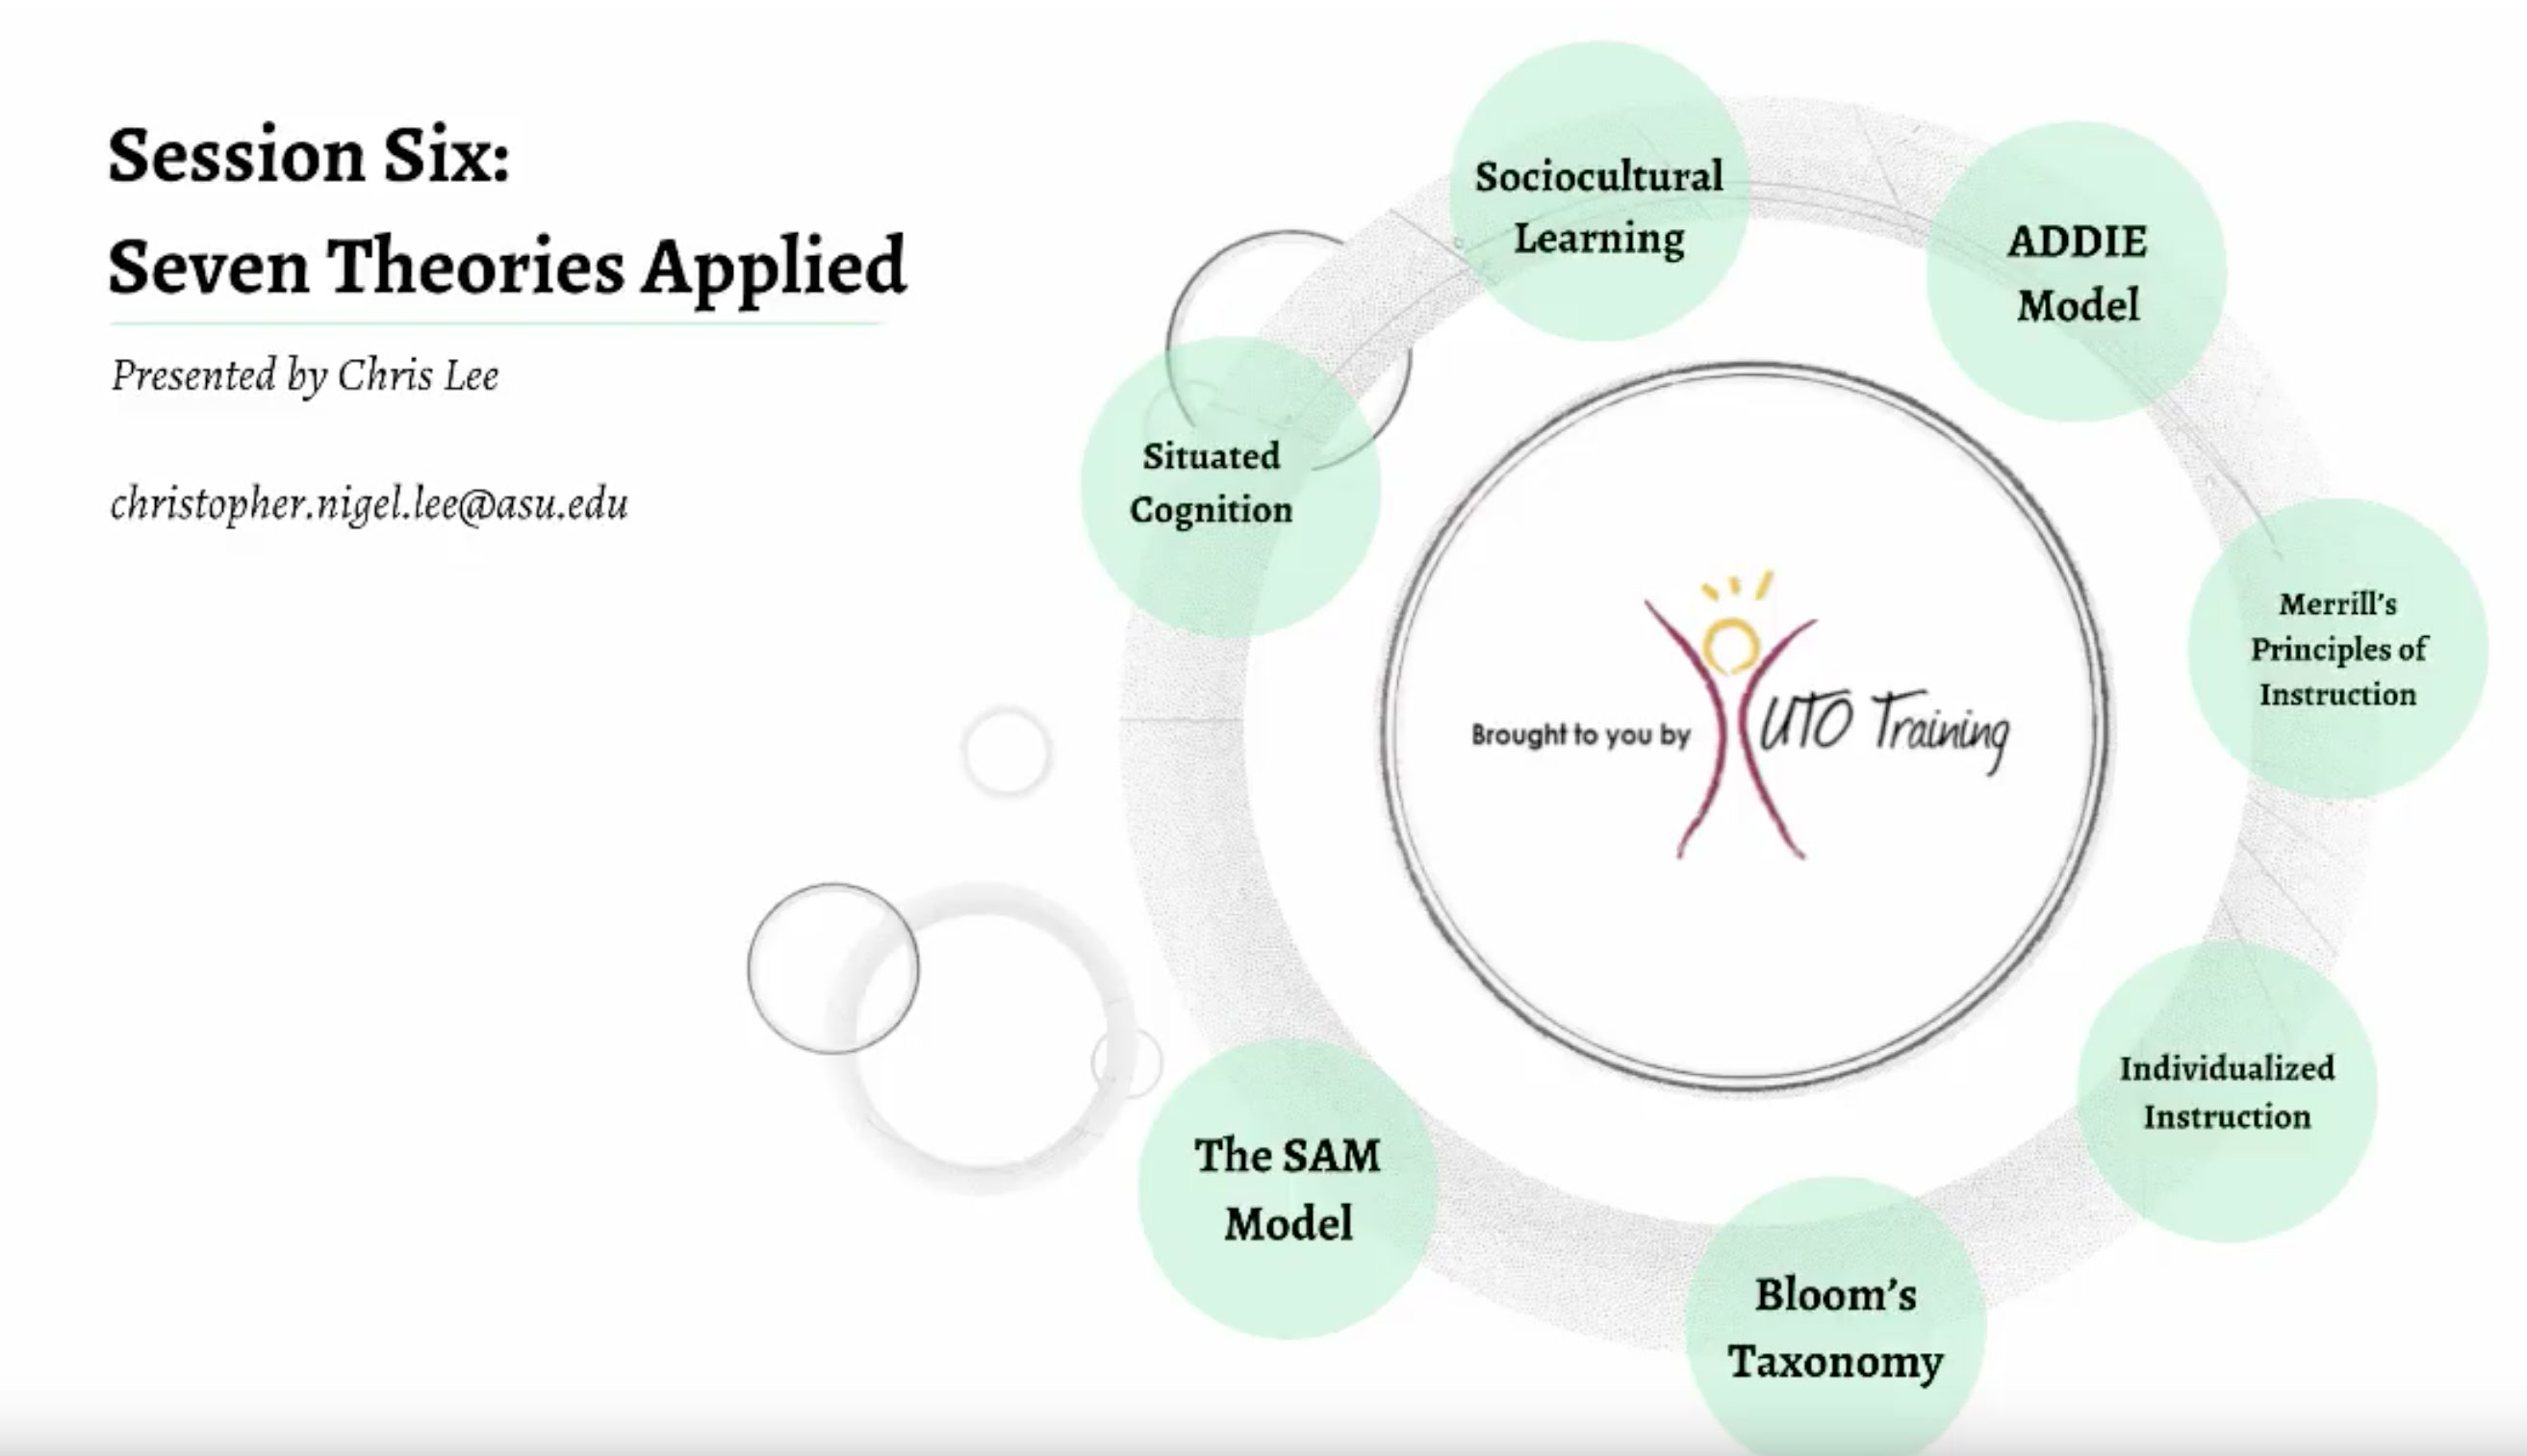 Instructional Design Models And Theories Instructional Design Theories For Your Next Course Teach Online